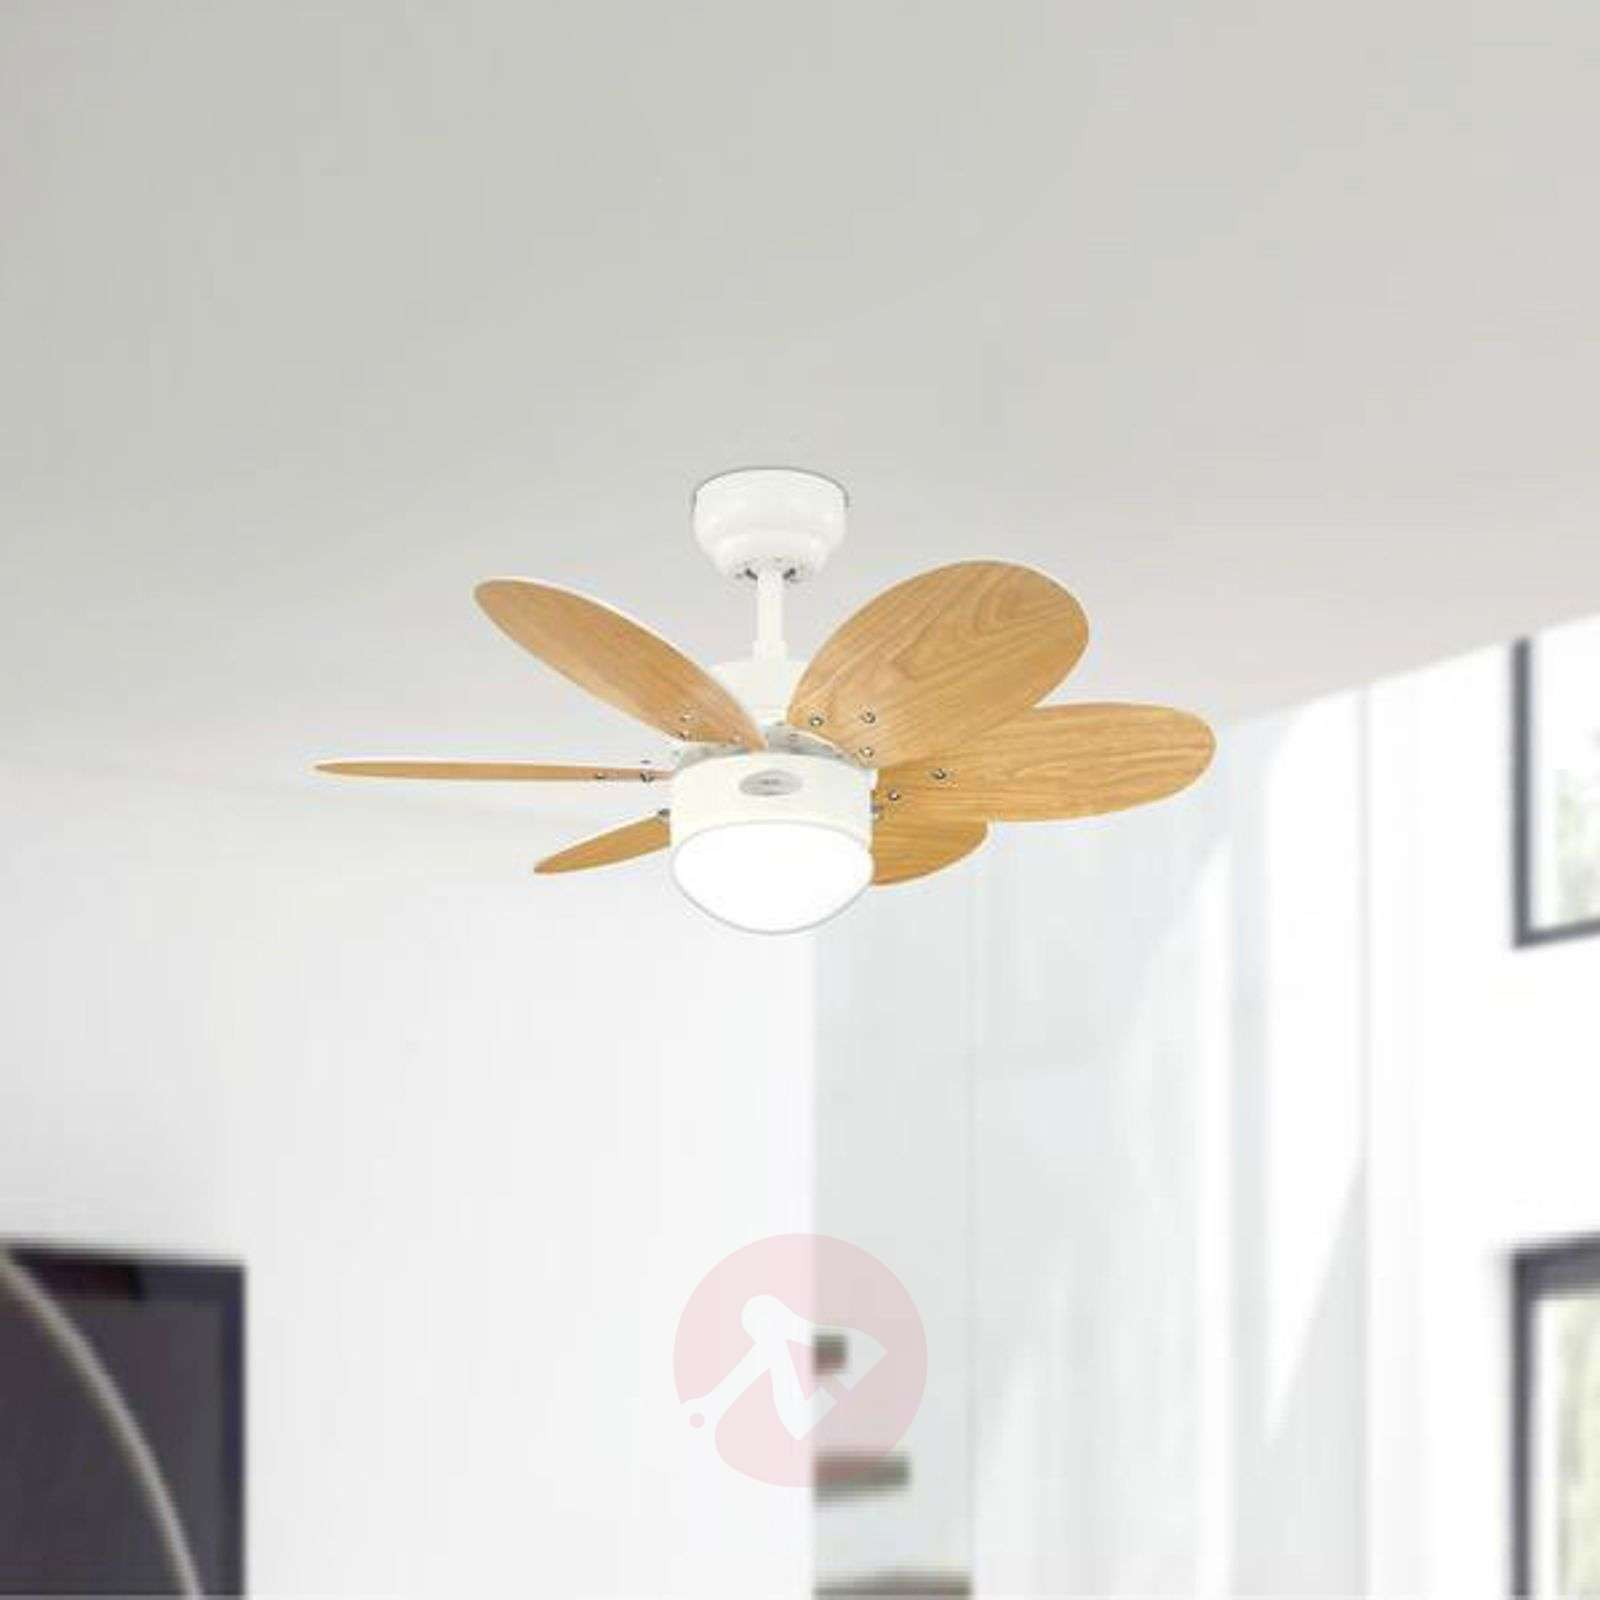 Turbo II ceiling fan with two sets of blades-9602030-02